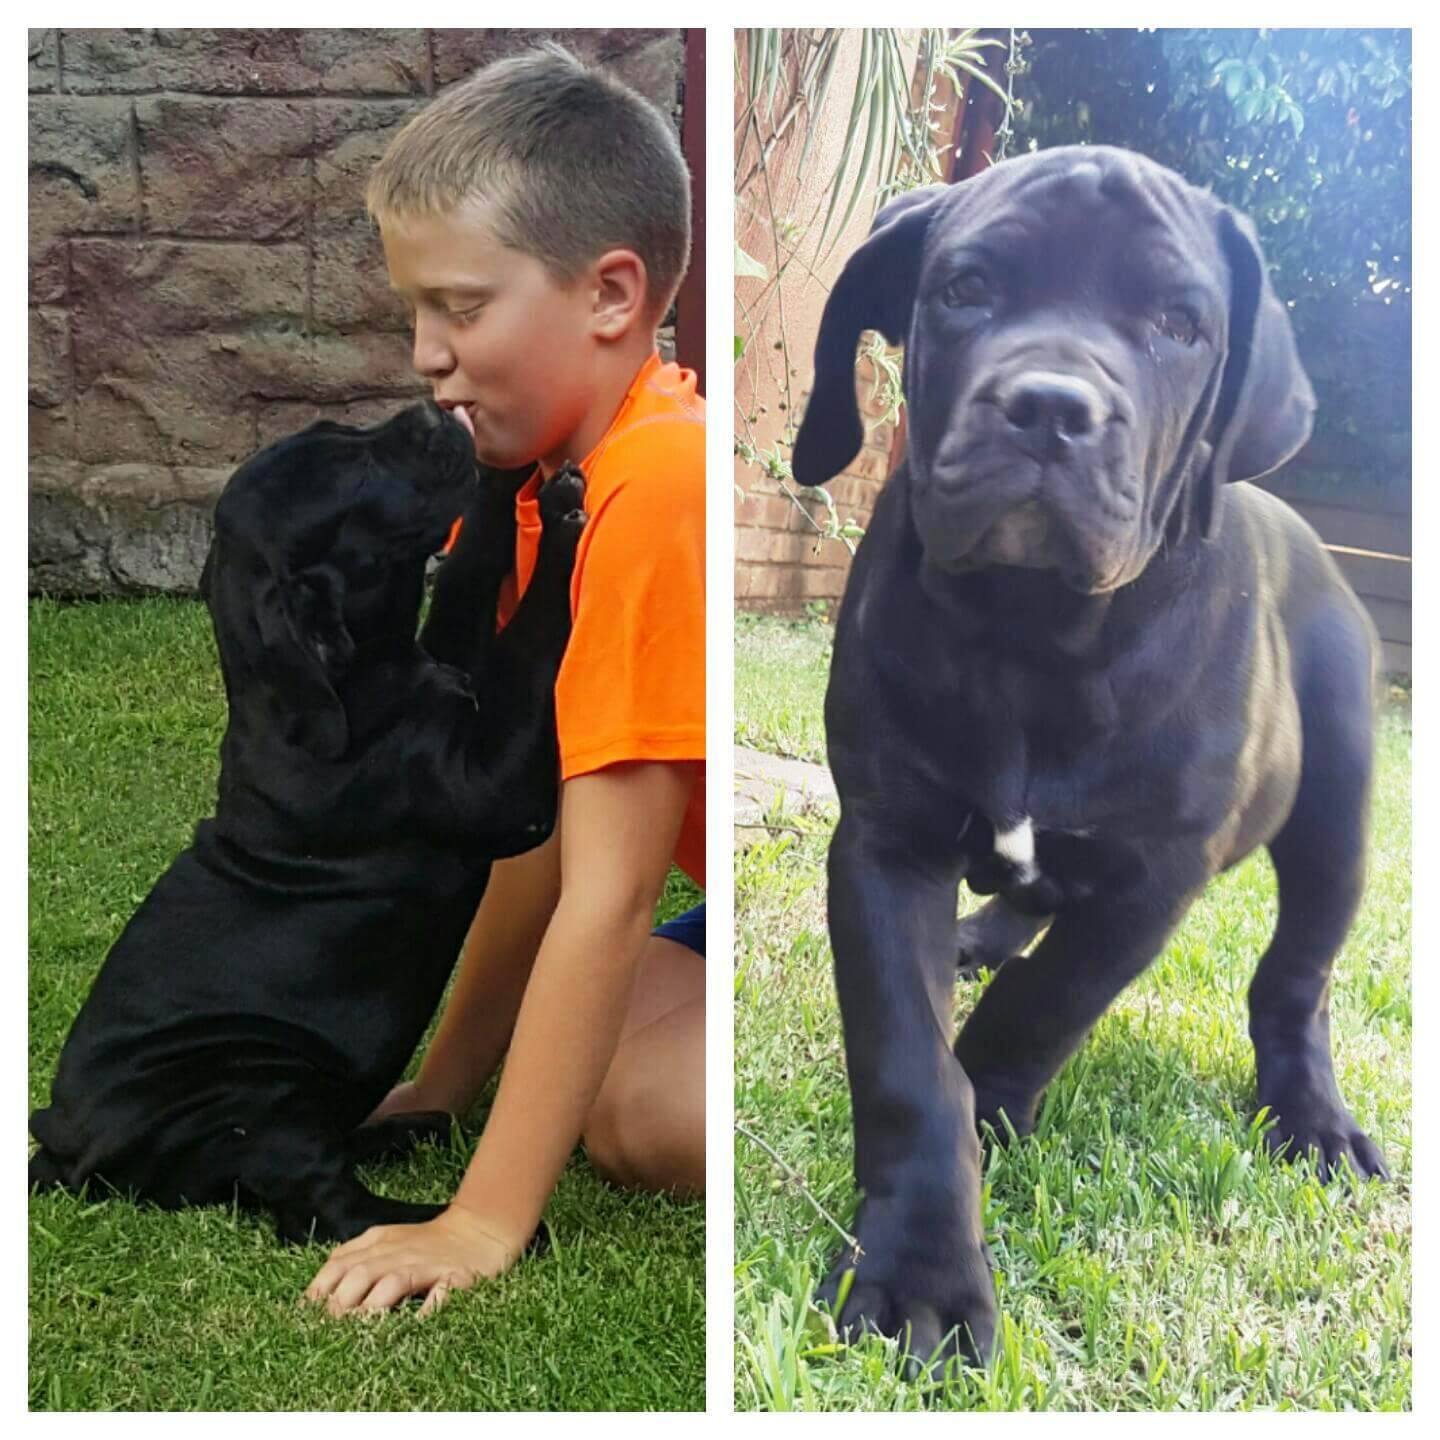 Boerboel Puppies for Sale in Johannesburg by Barbara Stolle